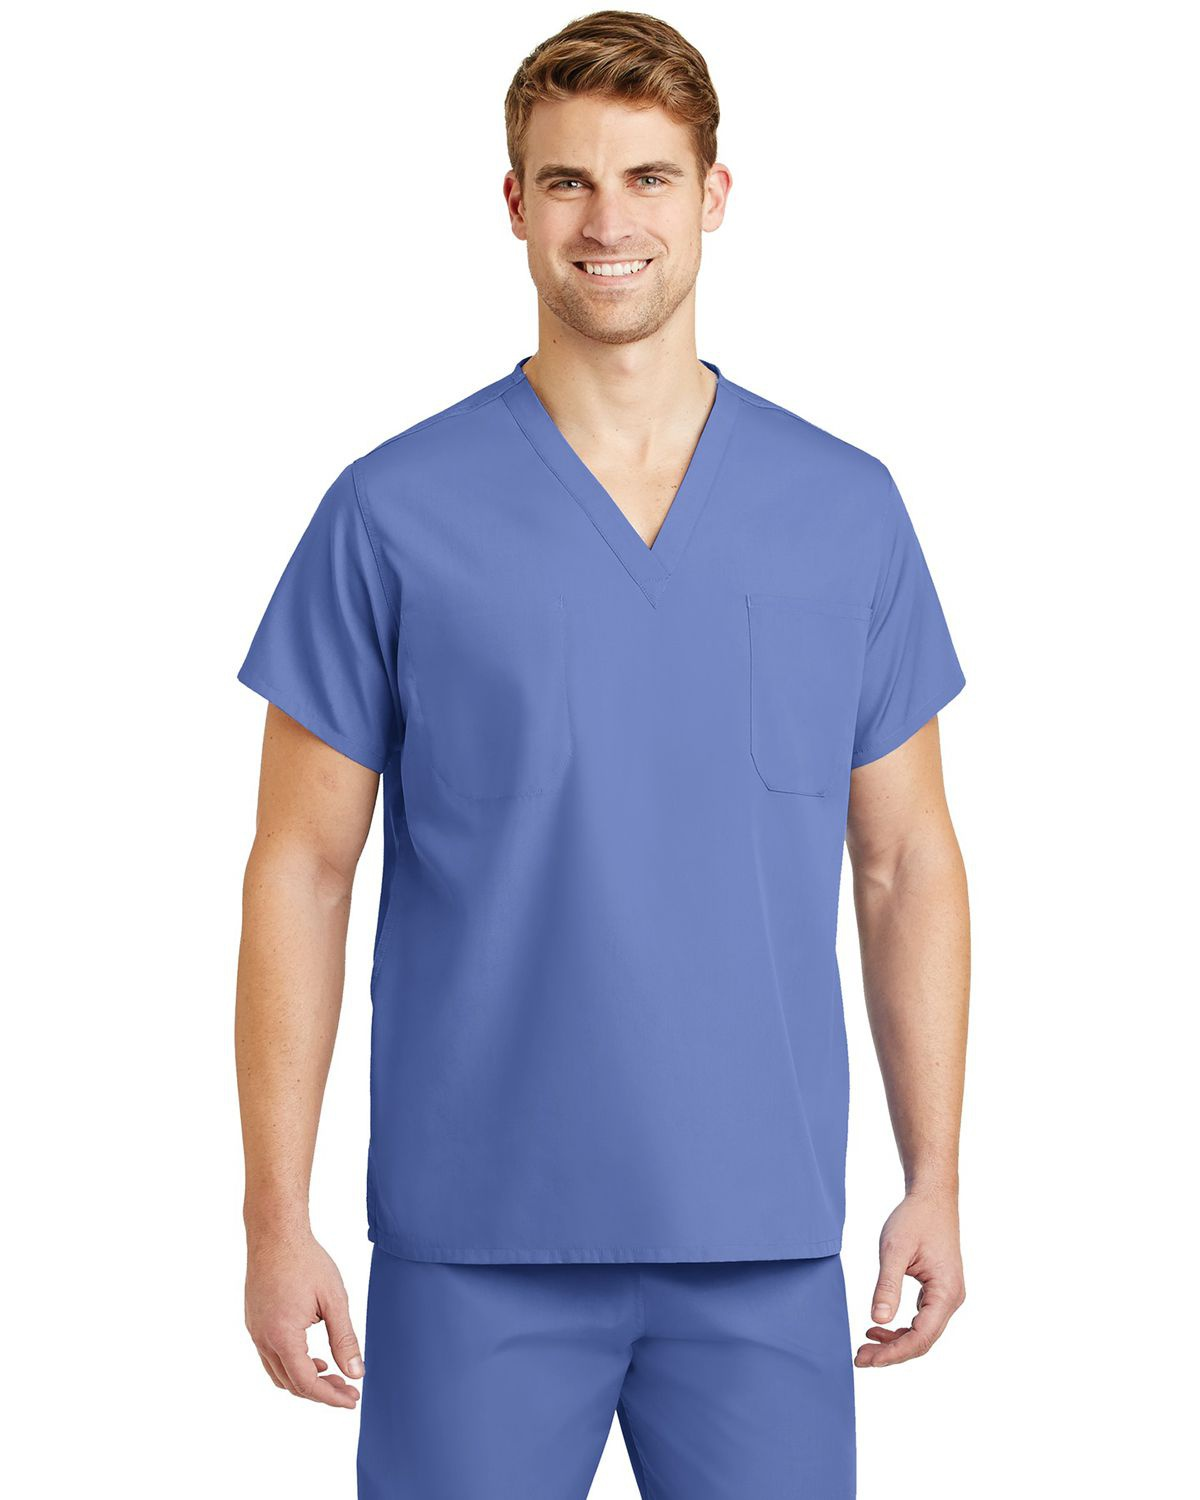 'Cornerstone CS501 V-Neck Scrub Top'